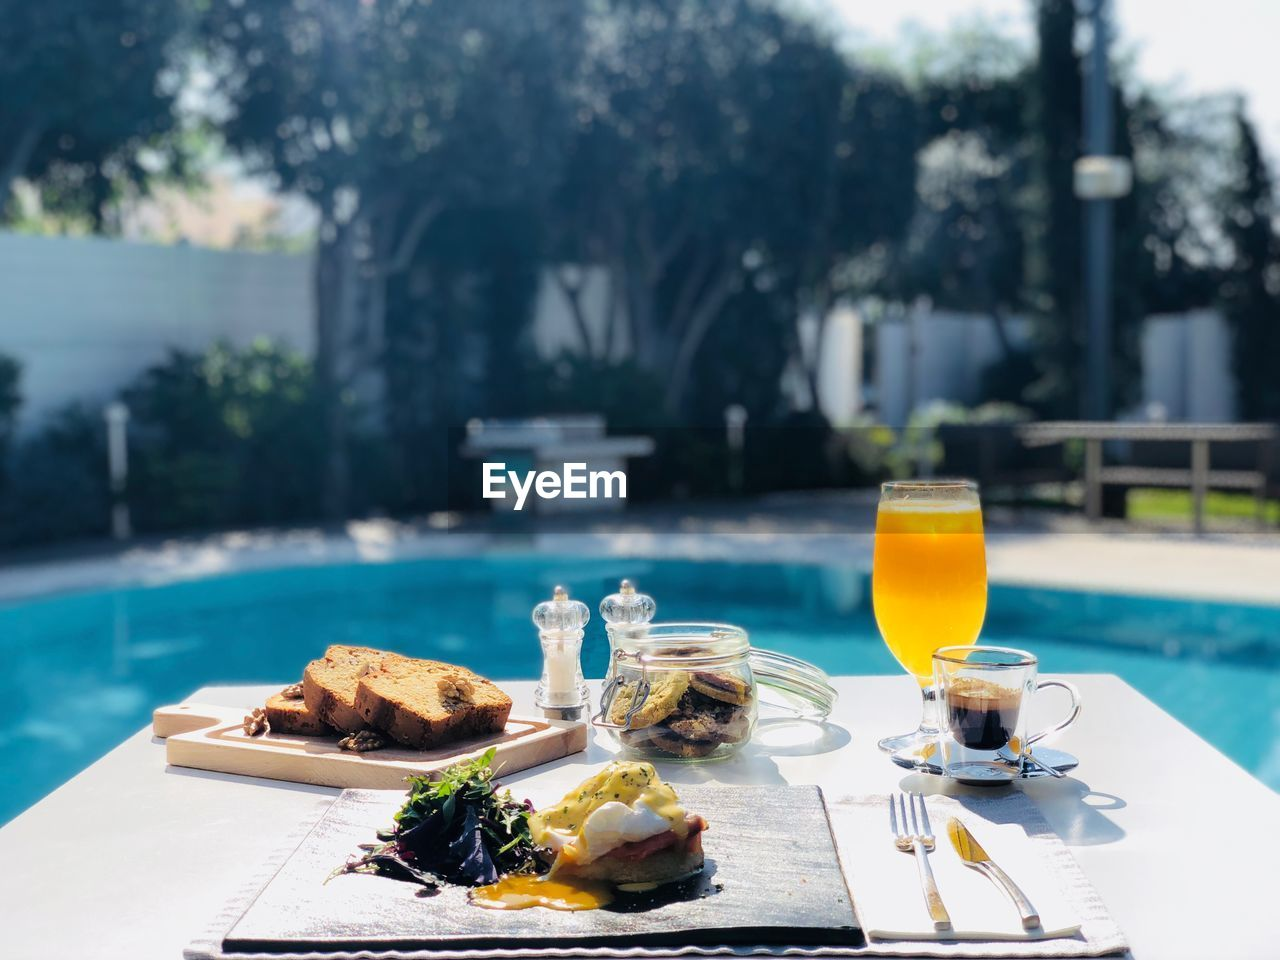 Breakfast served on table against swimming pool